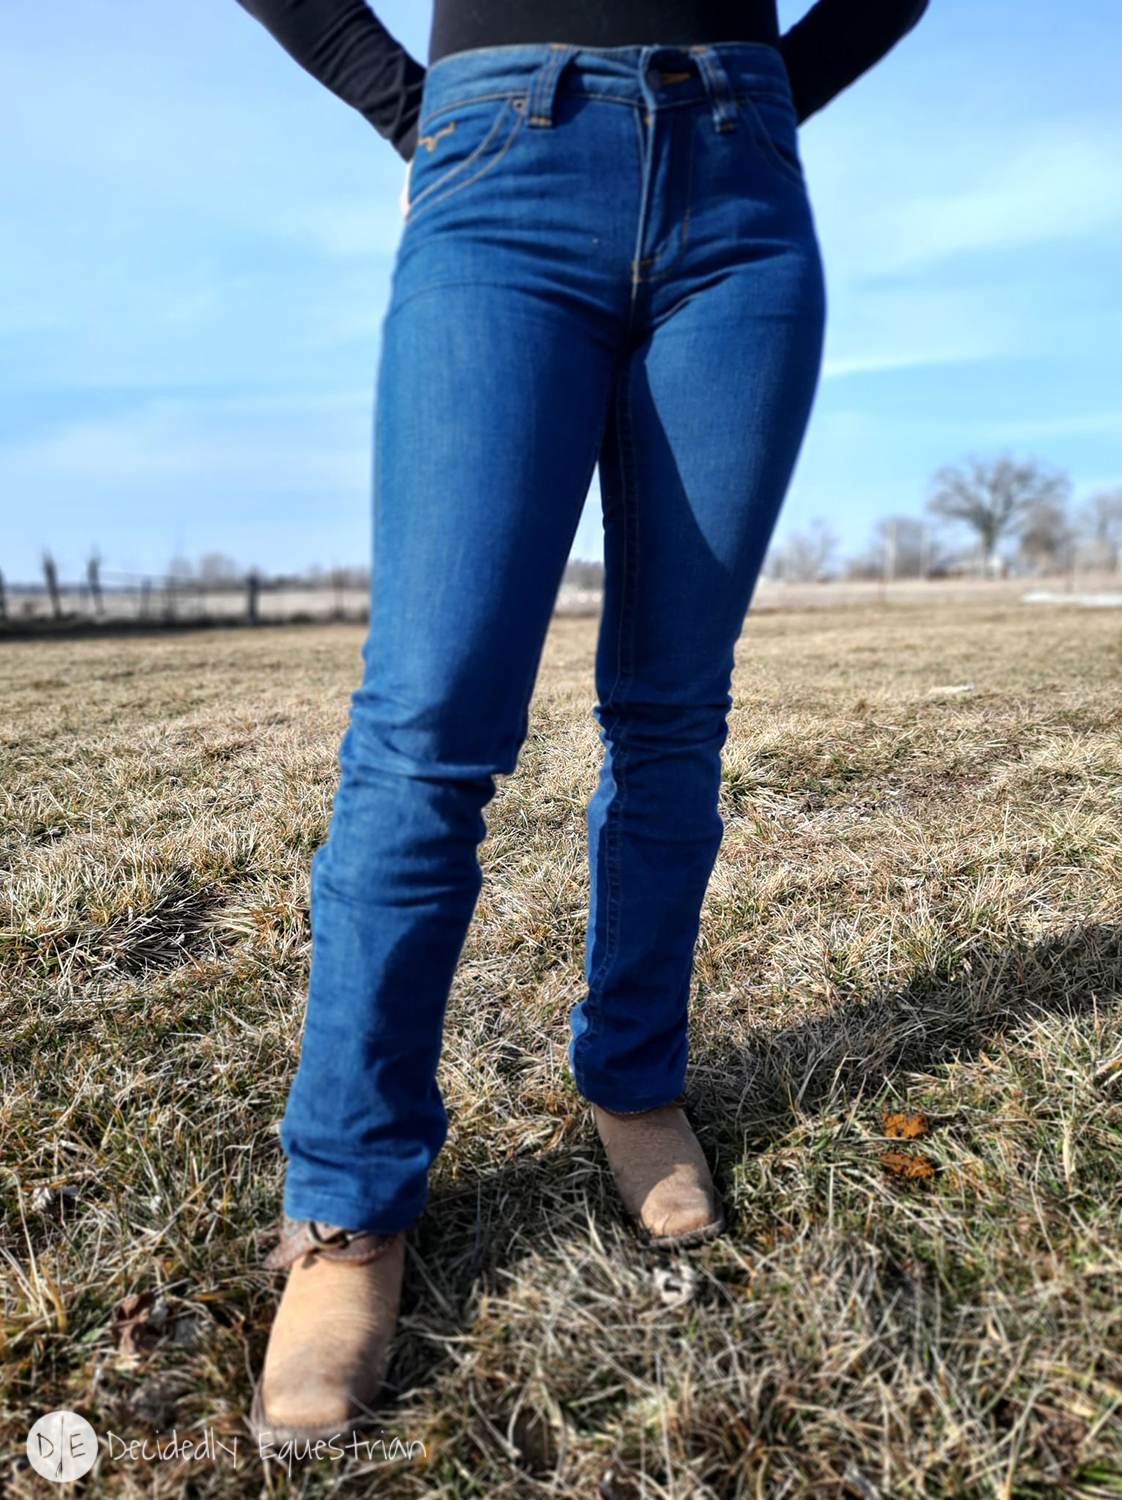 Kimes Ranch Jeans Product Review